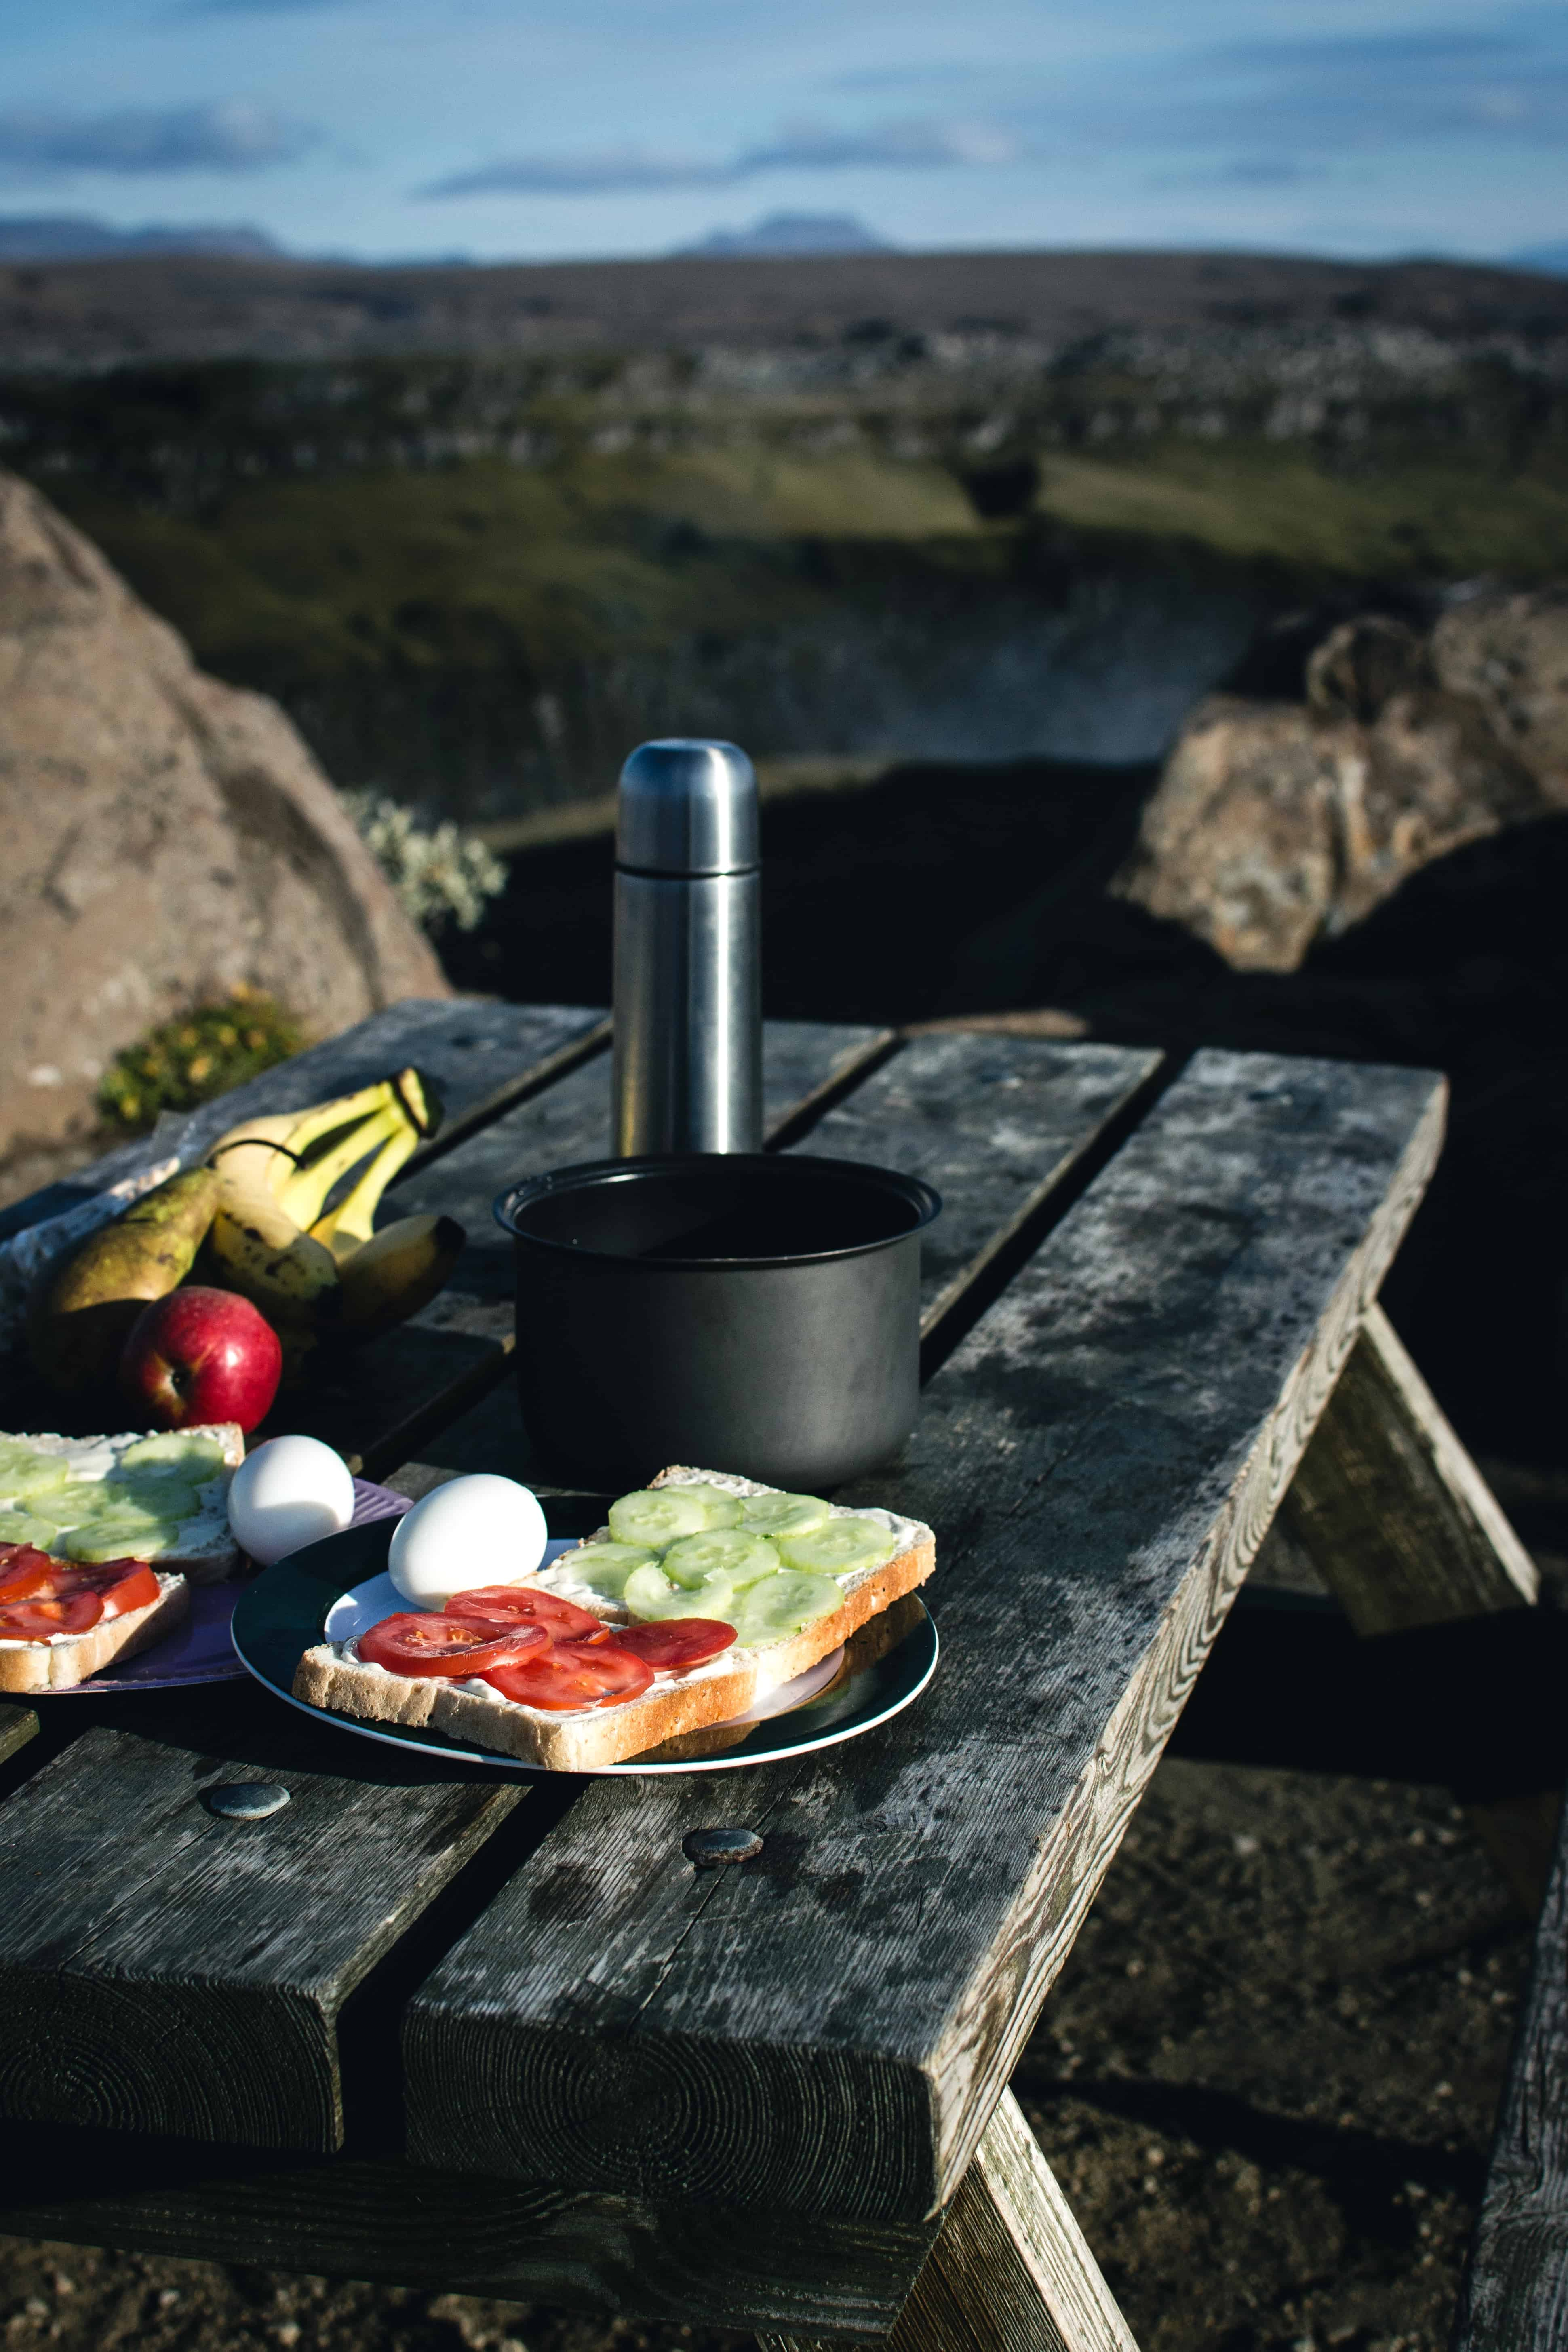 Free Picture: Food, Breakfast, Nature, Landscape, Outdoor